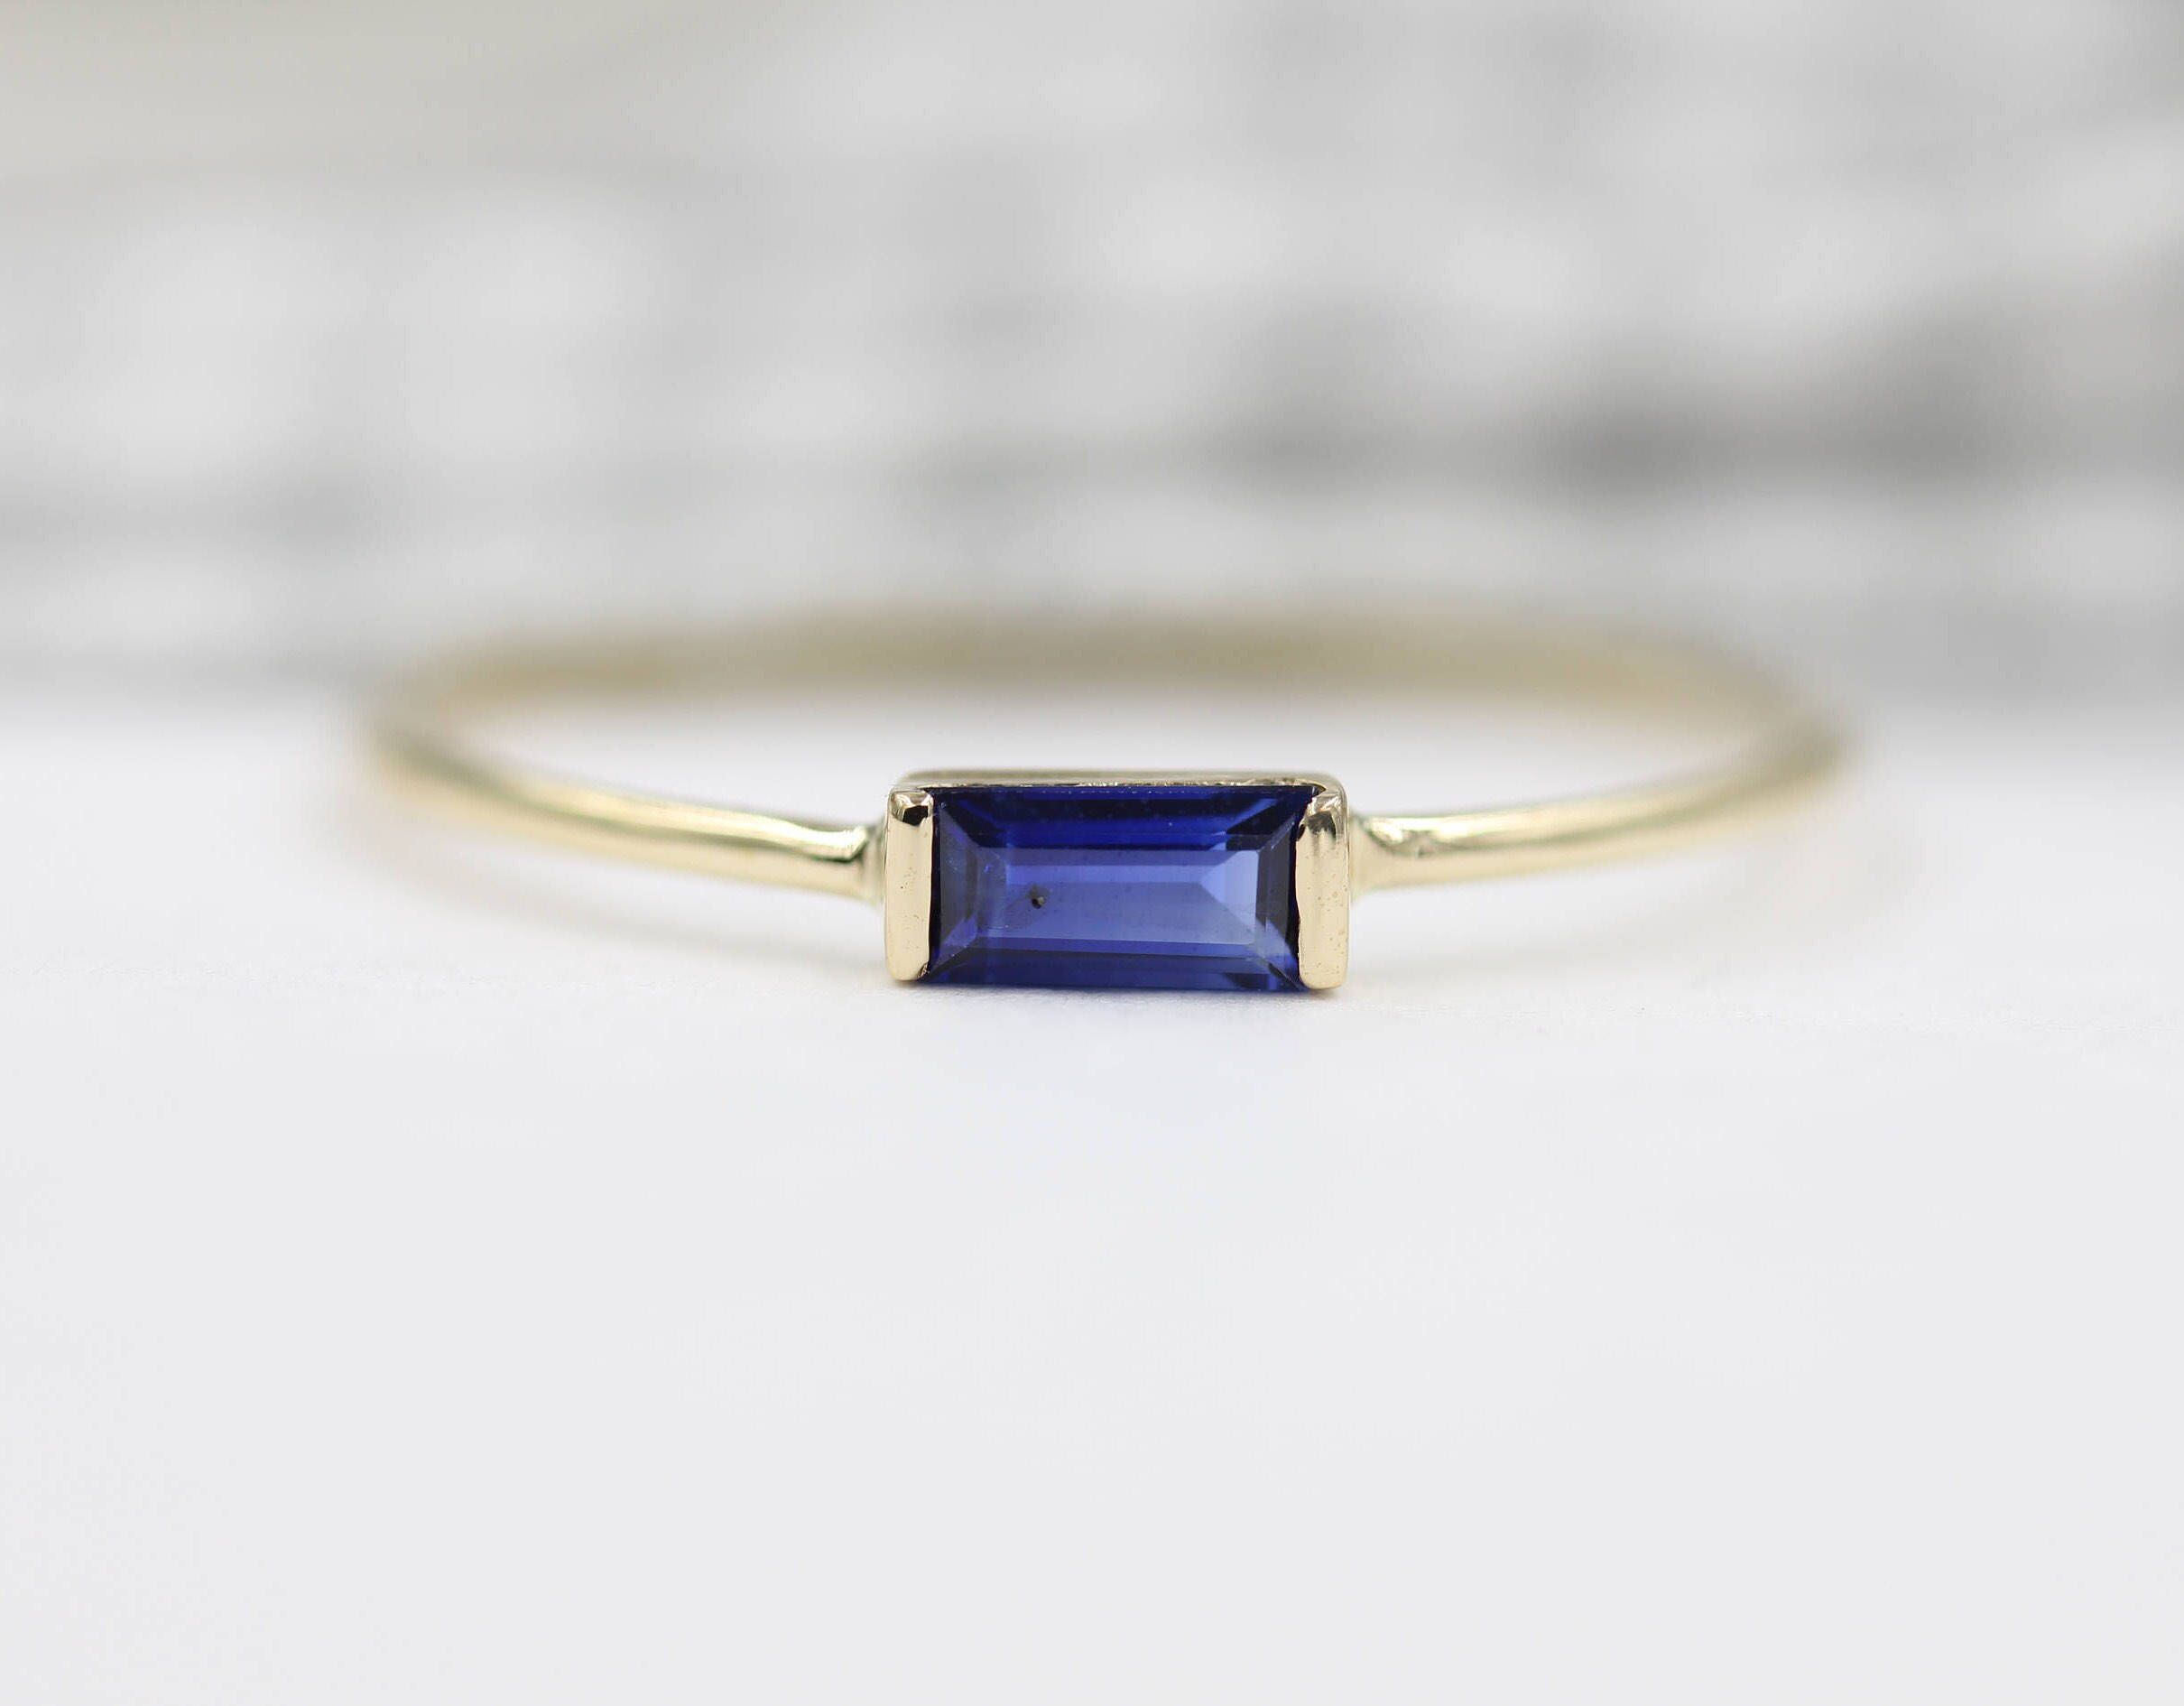 Sapphire Ring  Baguette Sapphire Ring  14k Solid Gold Minimalist Blue Sapphire Ring  Stacking Sapphire and Stone Ring Sapphire Jewelry